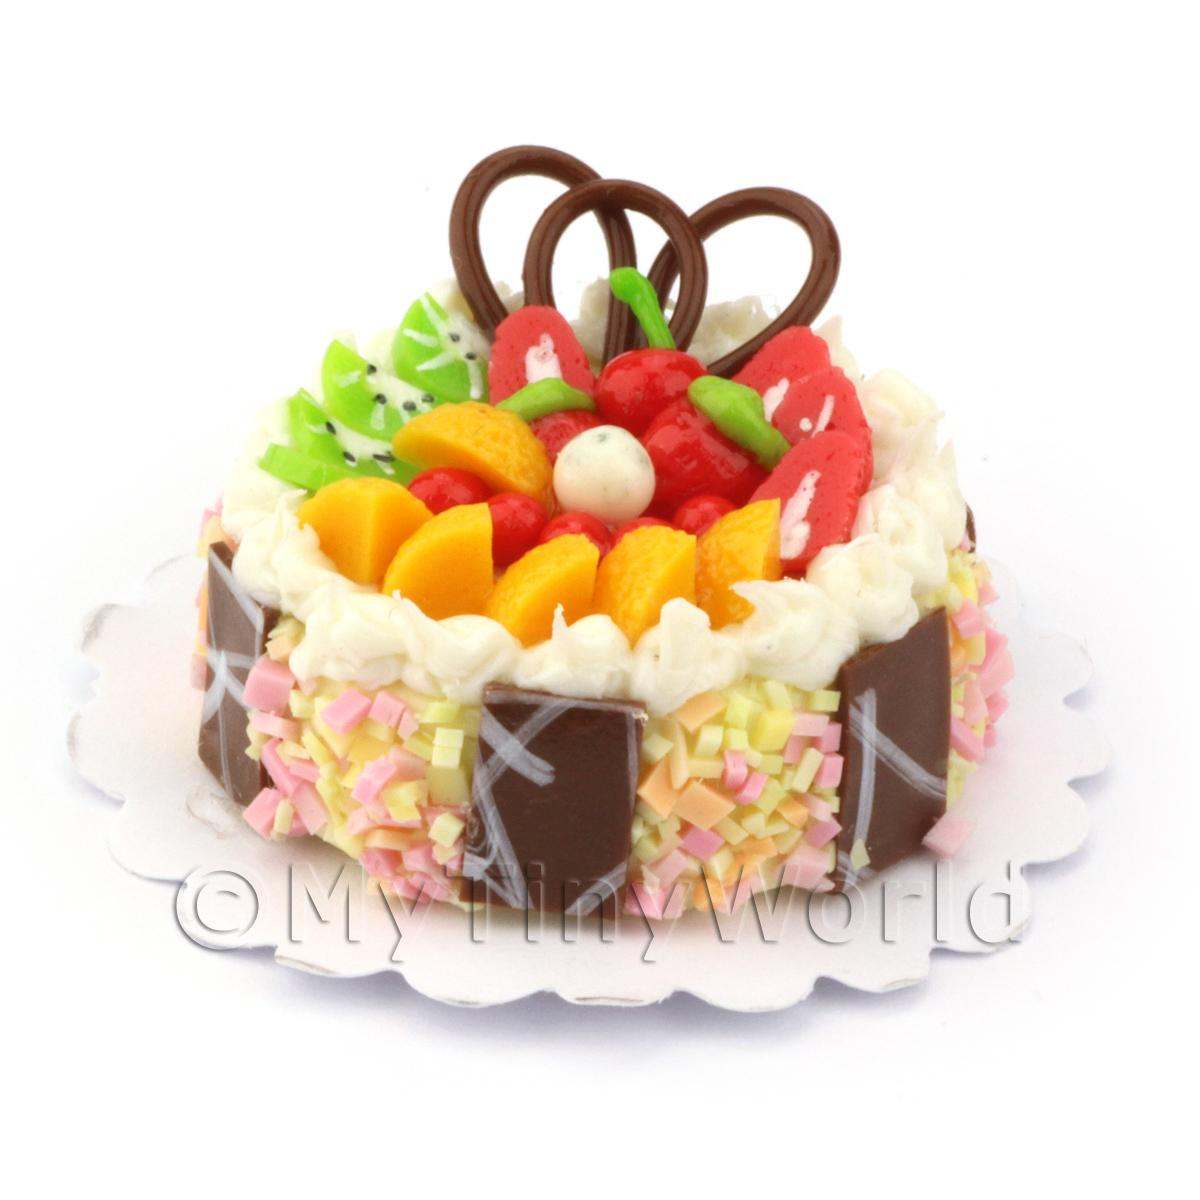 Dolls House Miniature Mixed Fruit Topped Cake